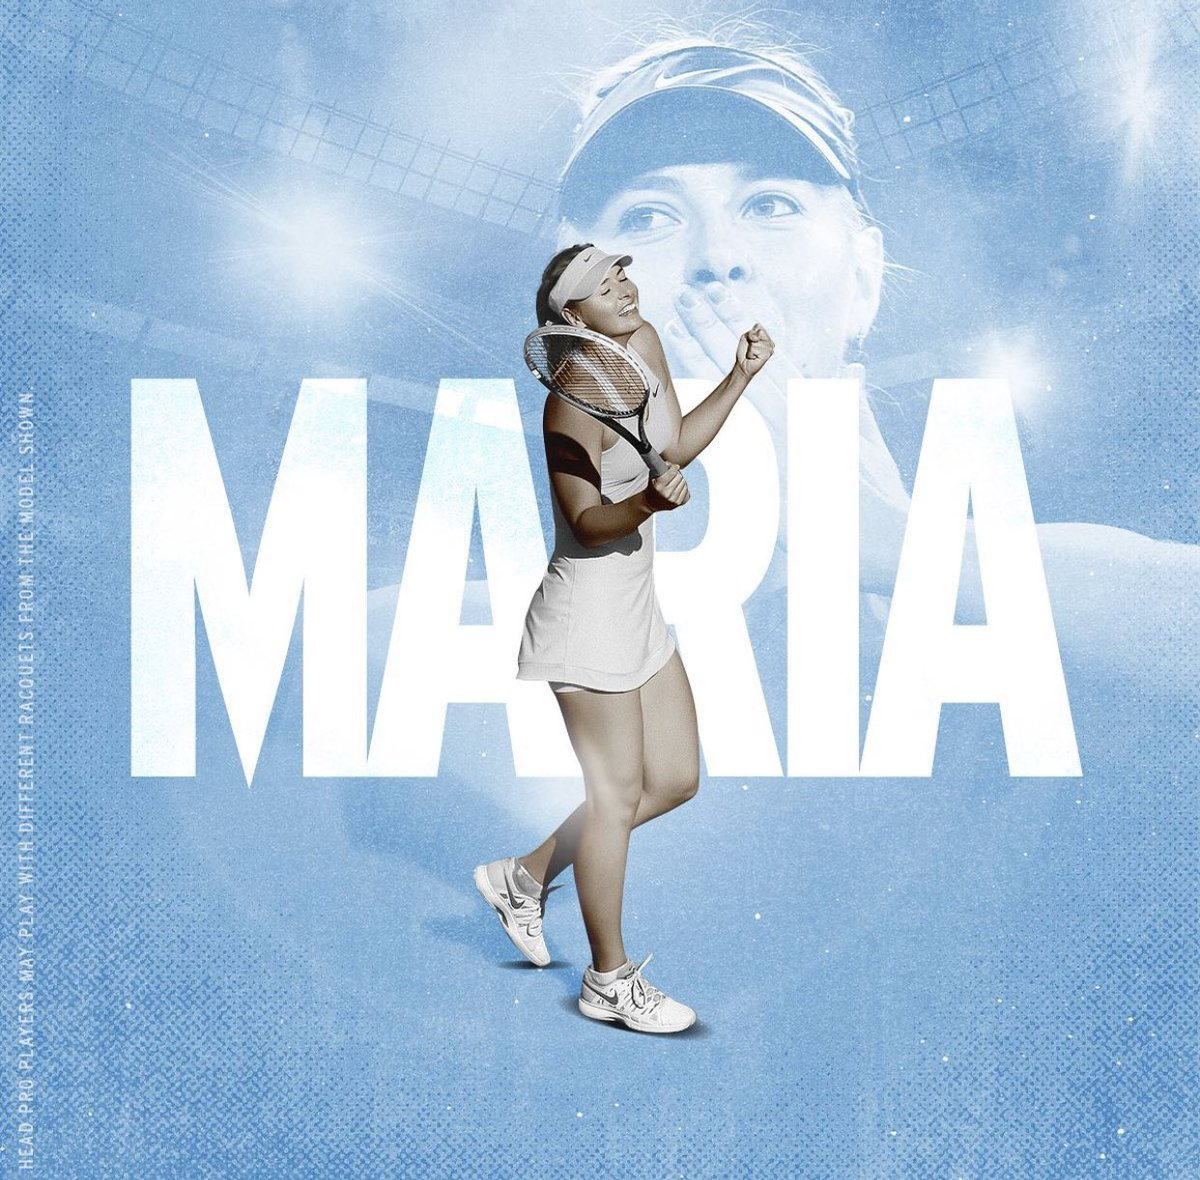 Amazing career. Amazing leader. Amazing human. Thank you for all you've done for tennis @MariaSharapova. I can't wait to watch your journey continue off court. pic.twitter.com/uhxE963zZM